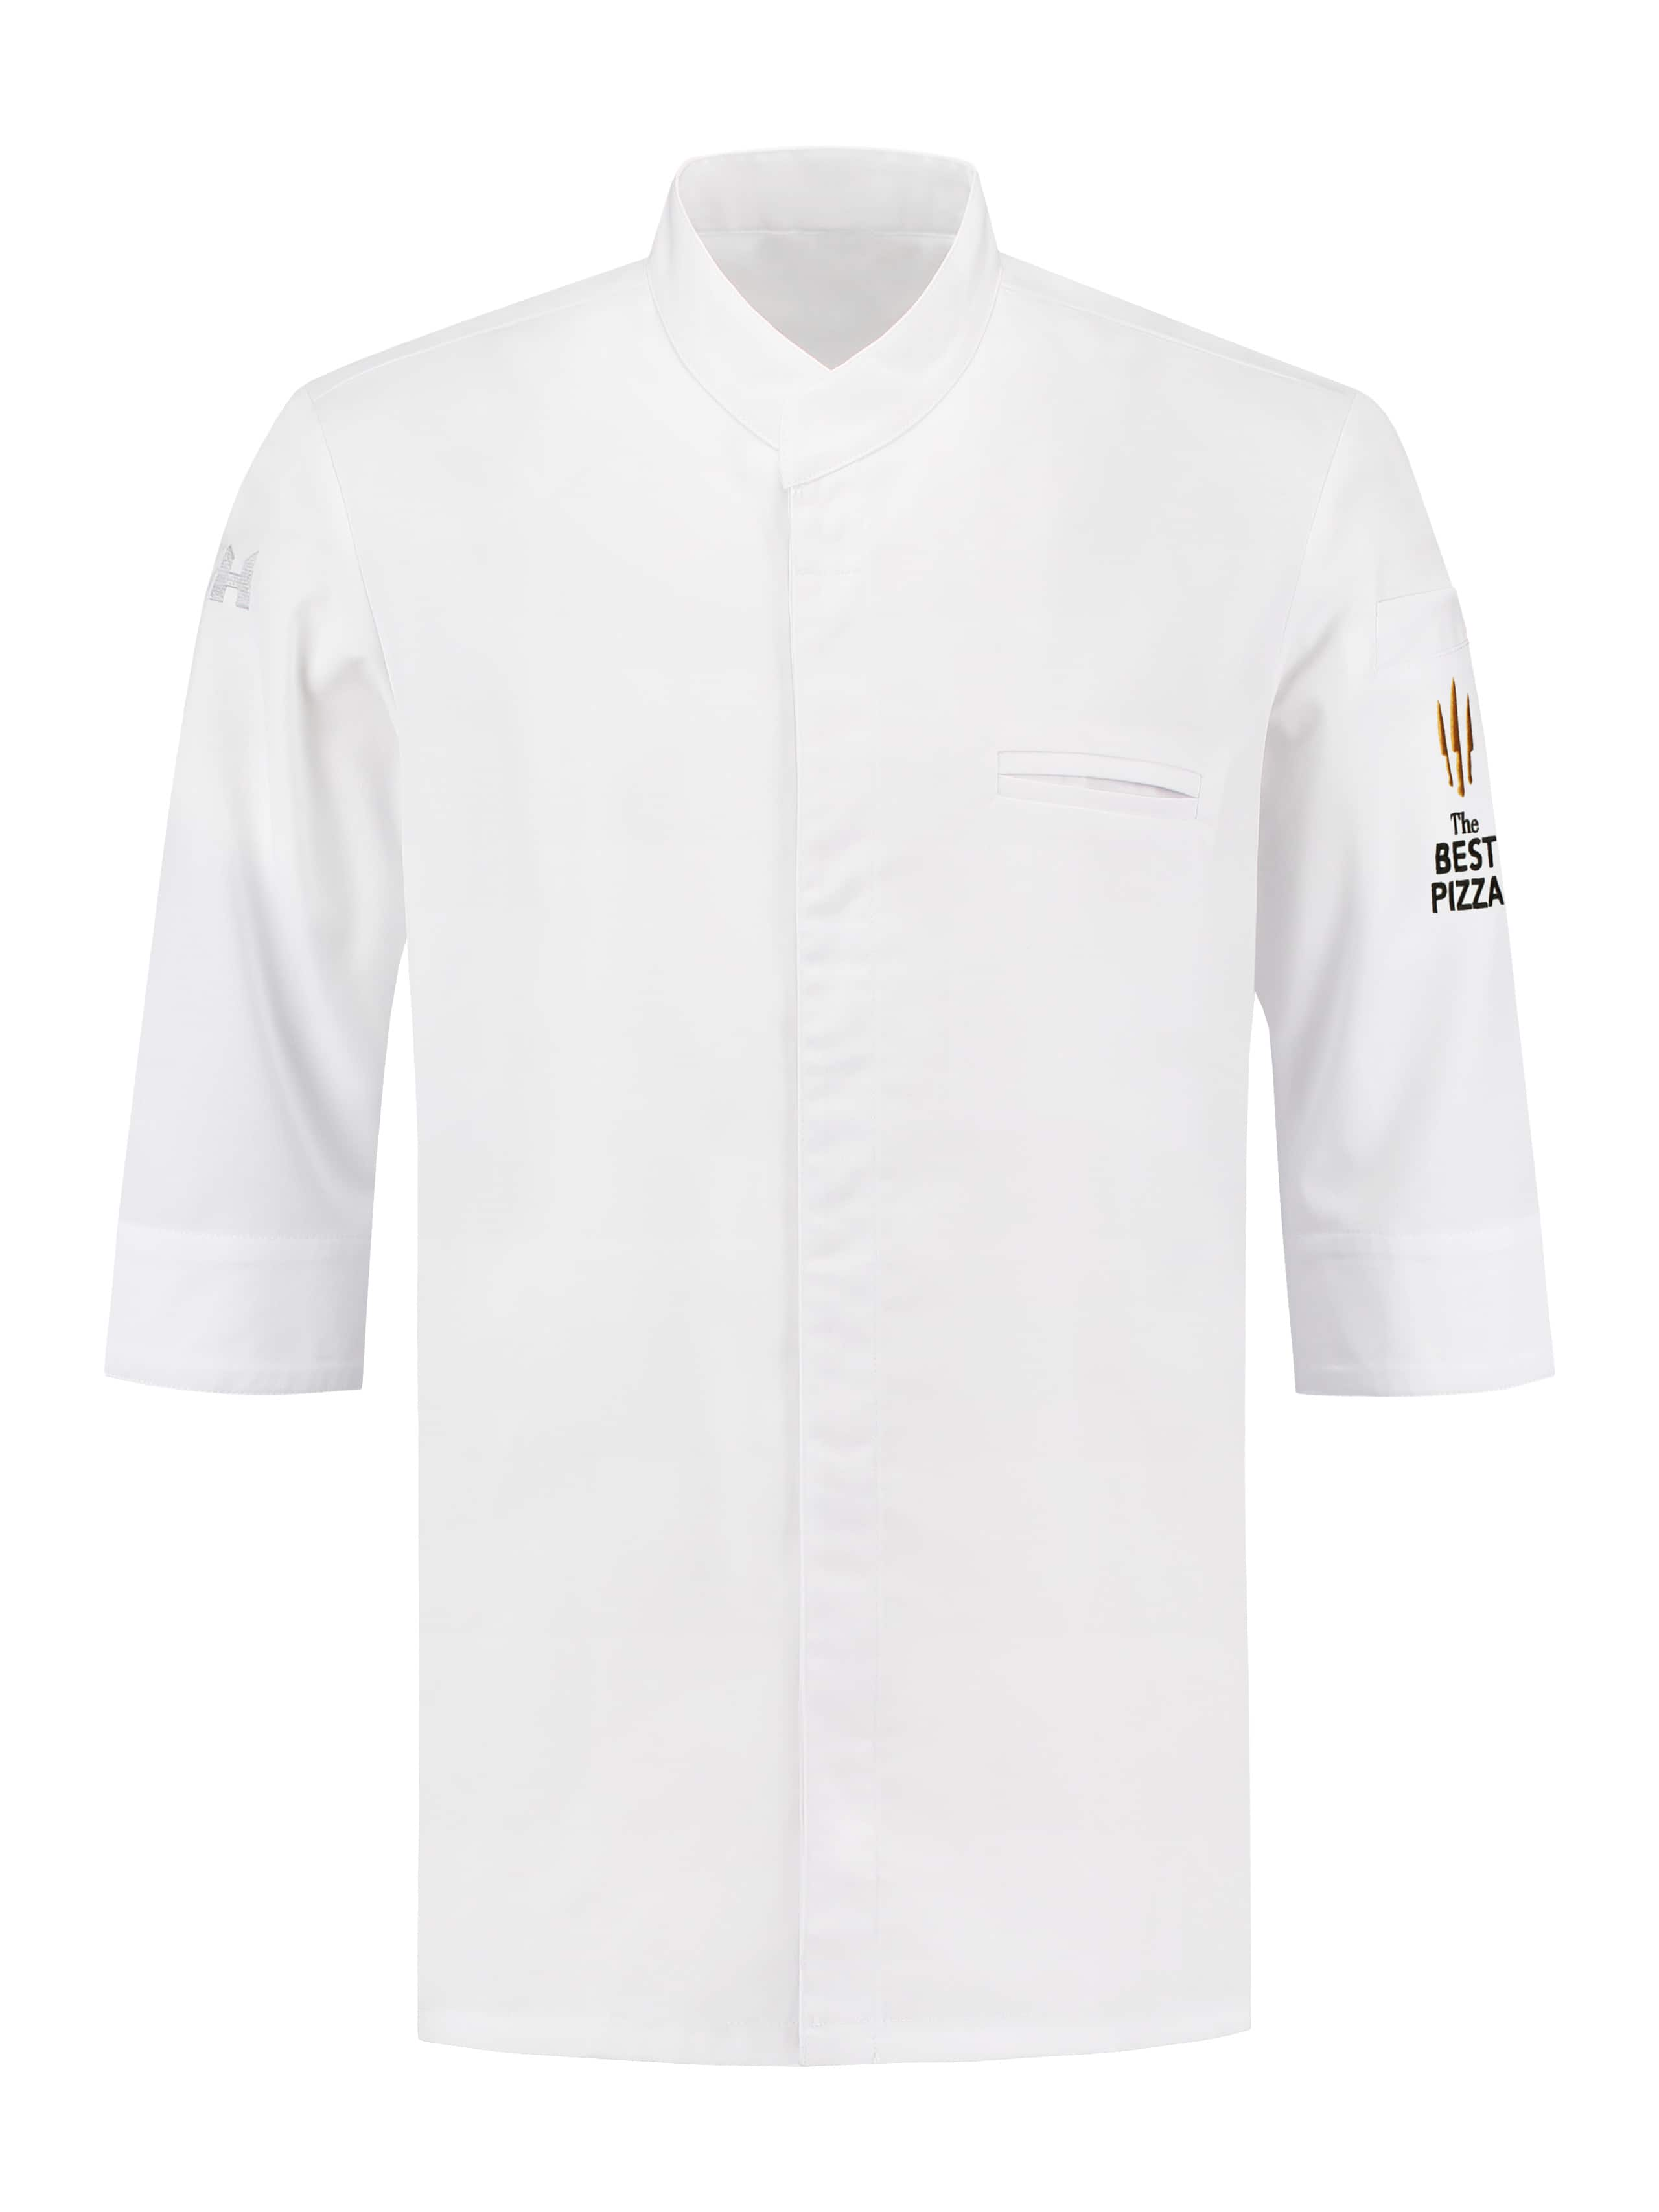 Chef Jacket The Best Pizza Fabian White